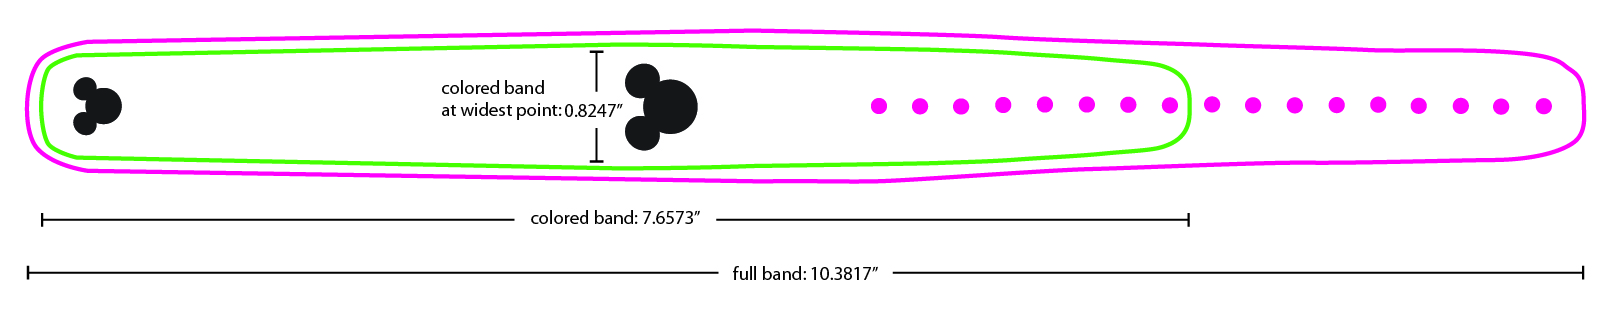 band press release template - magic band designs the dis disney discussion forums